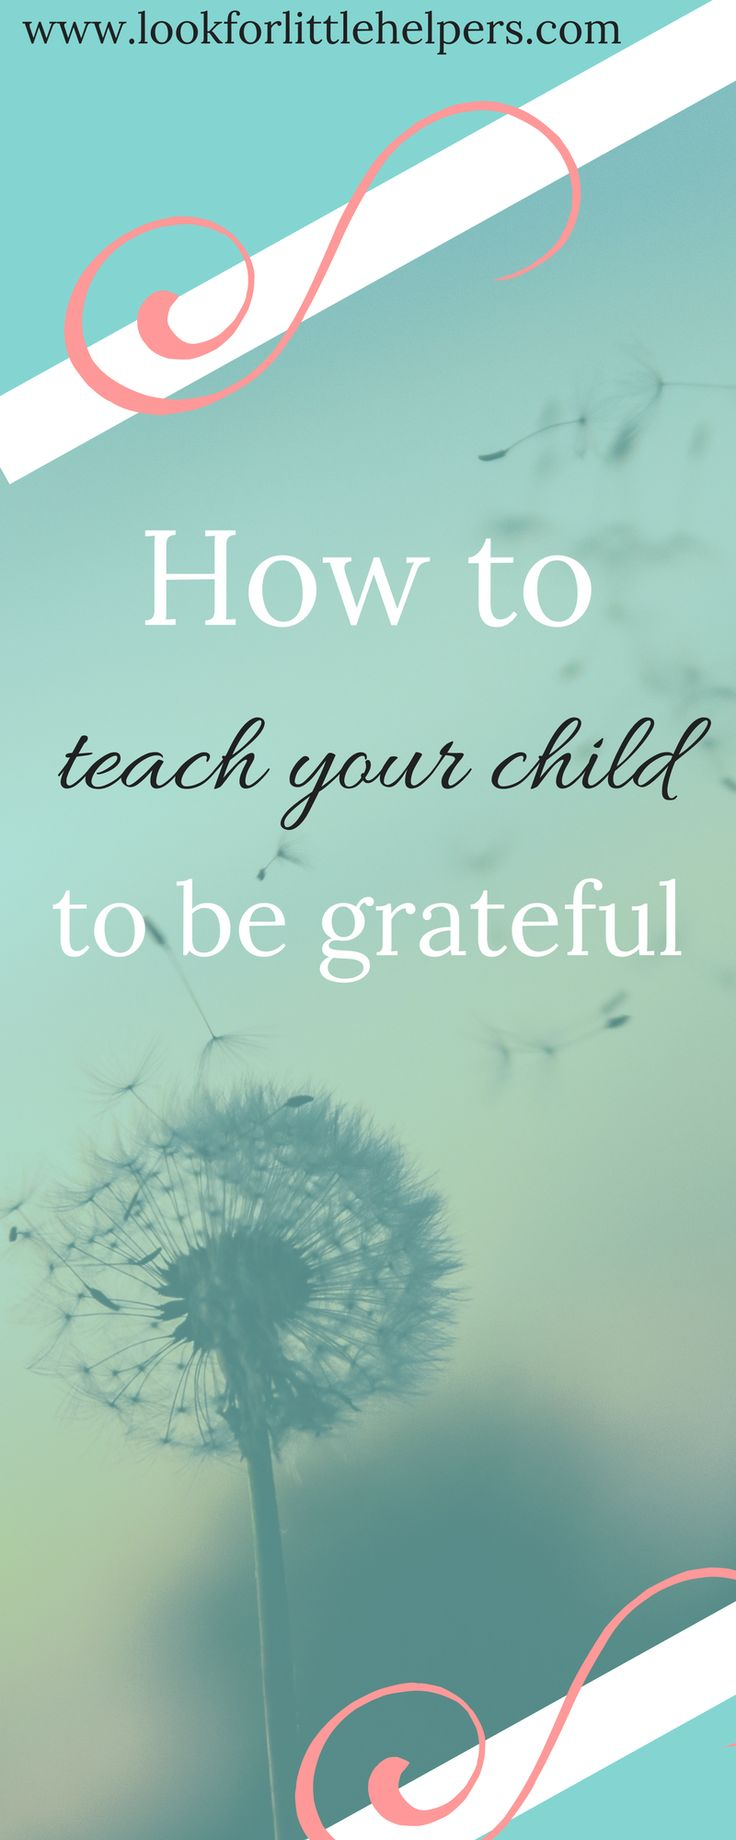 15 Ways to teach your child to be grateful, plus WHY, WHEN, and HOW to encourage gratitude!